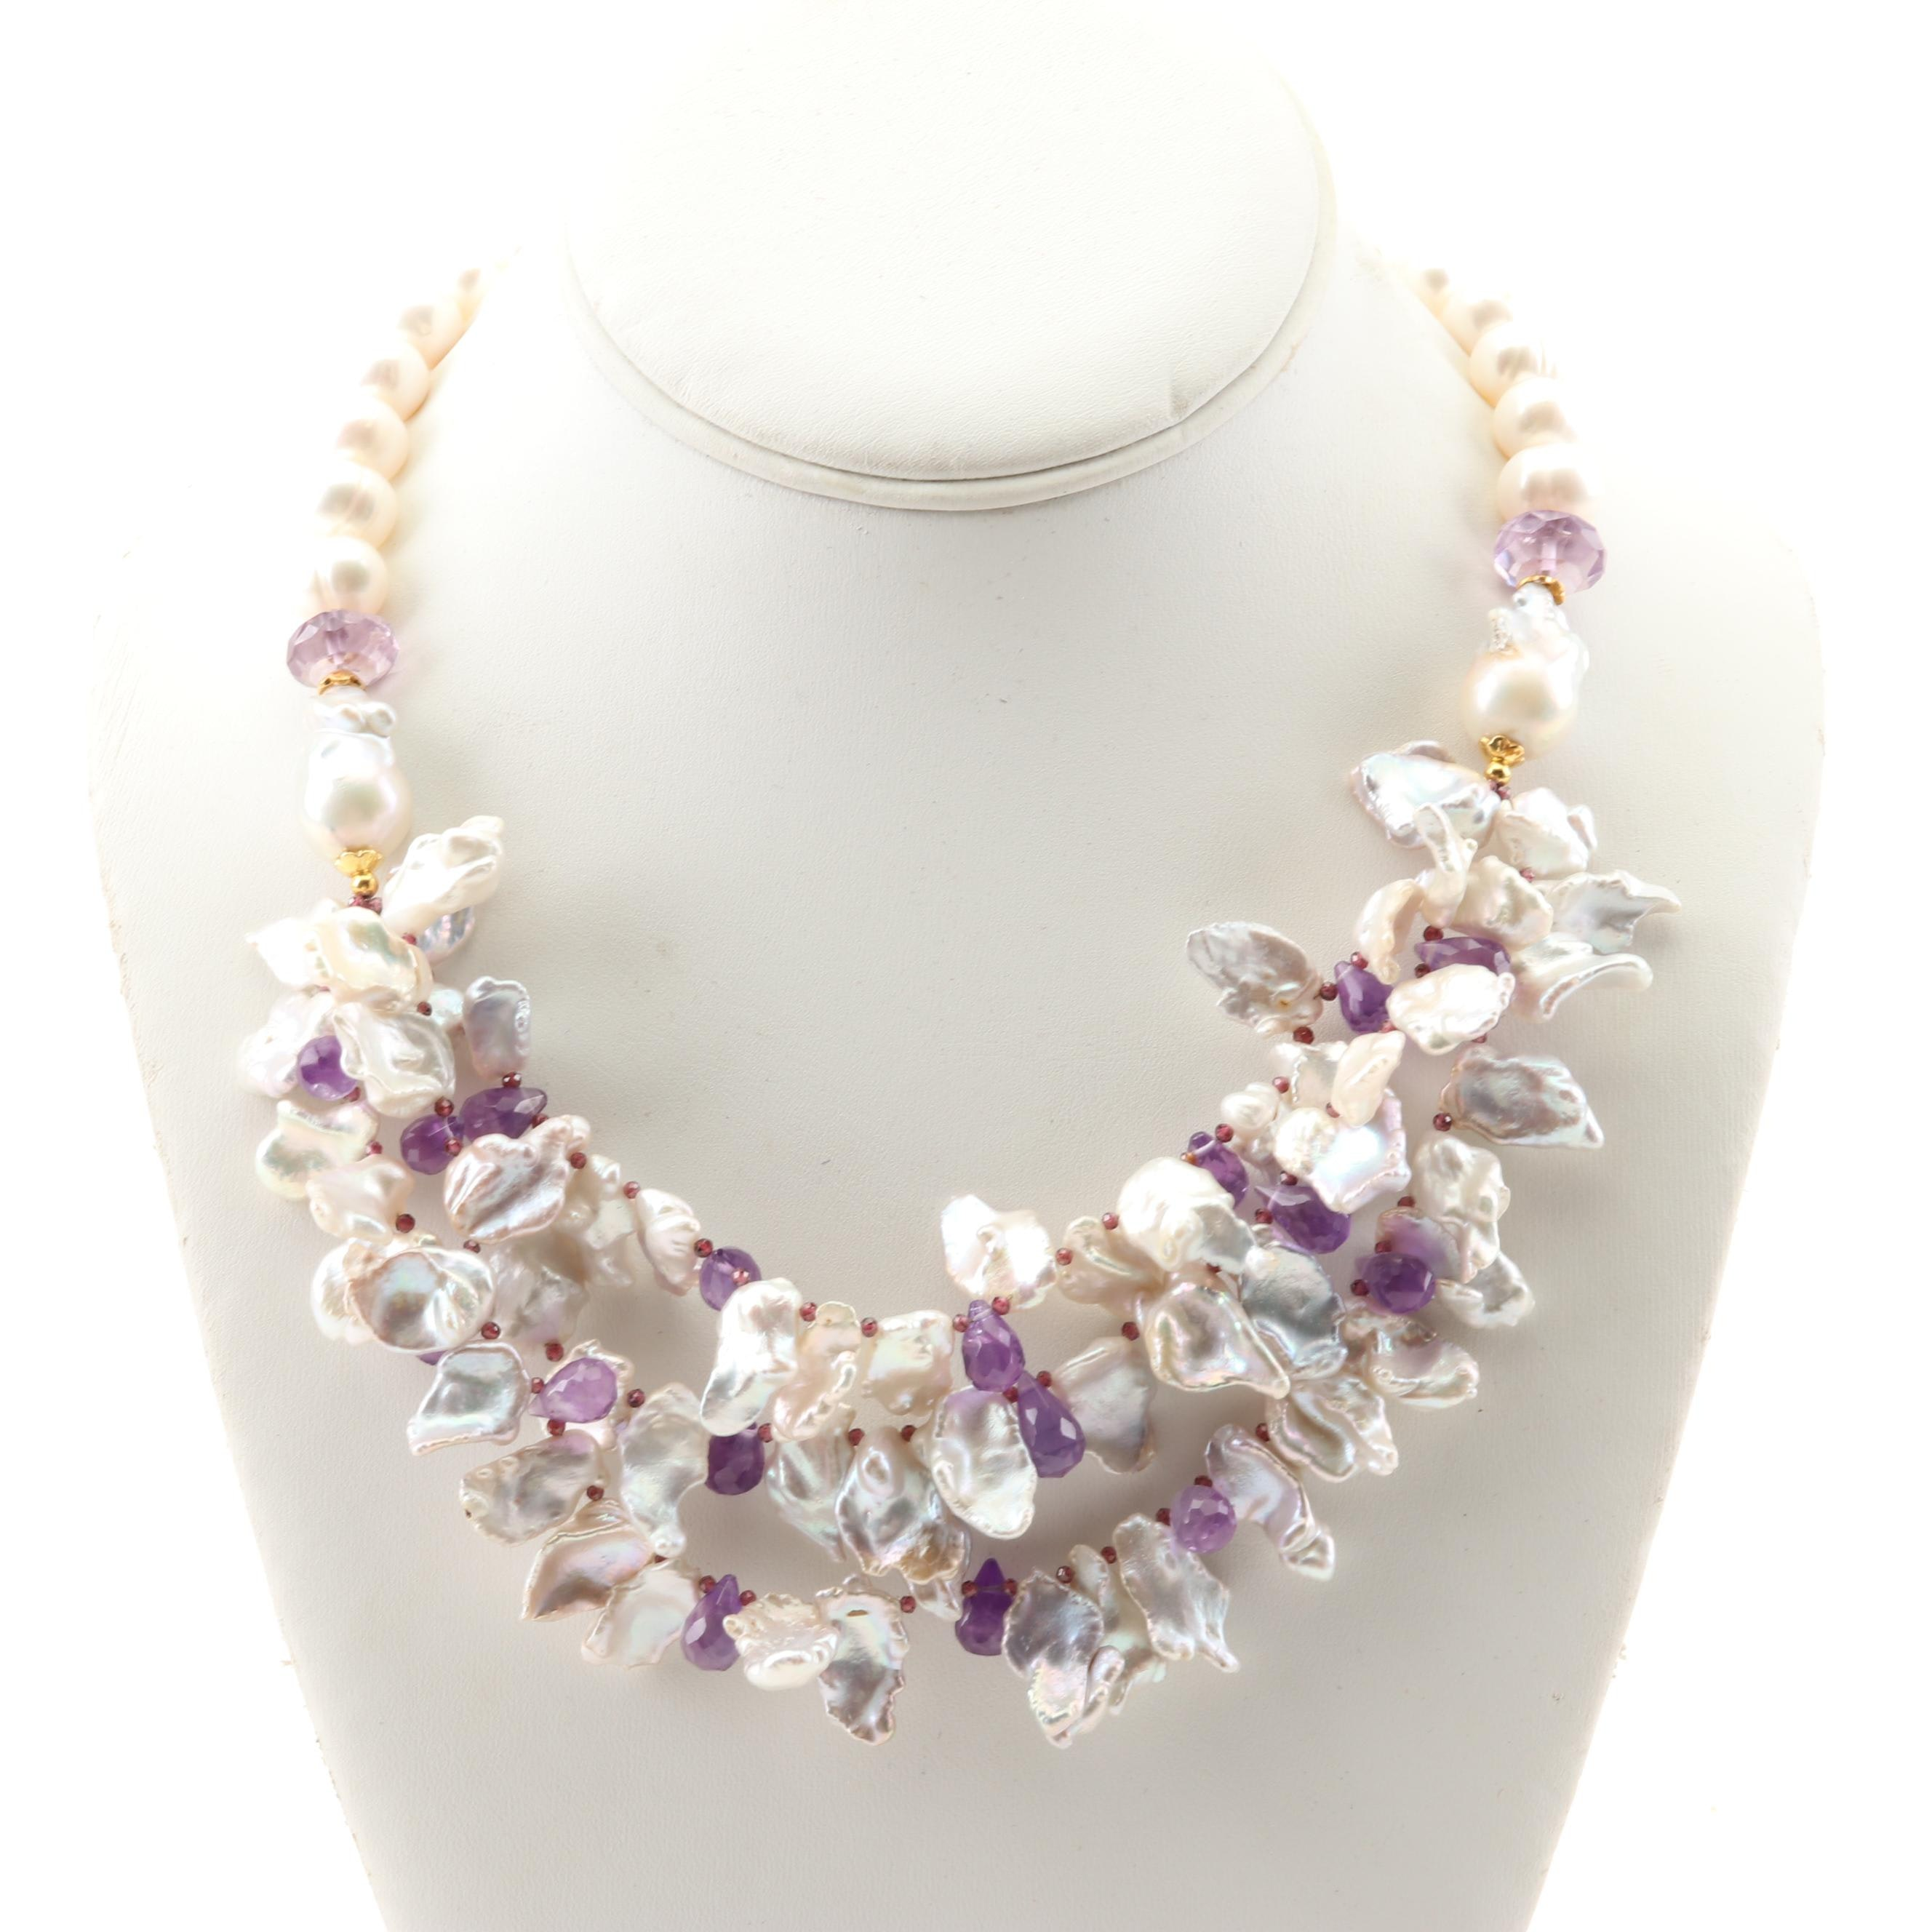 Freshwater Pearl and Amethyst Necklace with Sterling Clasp